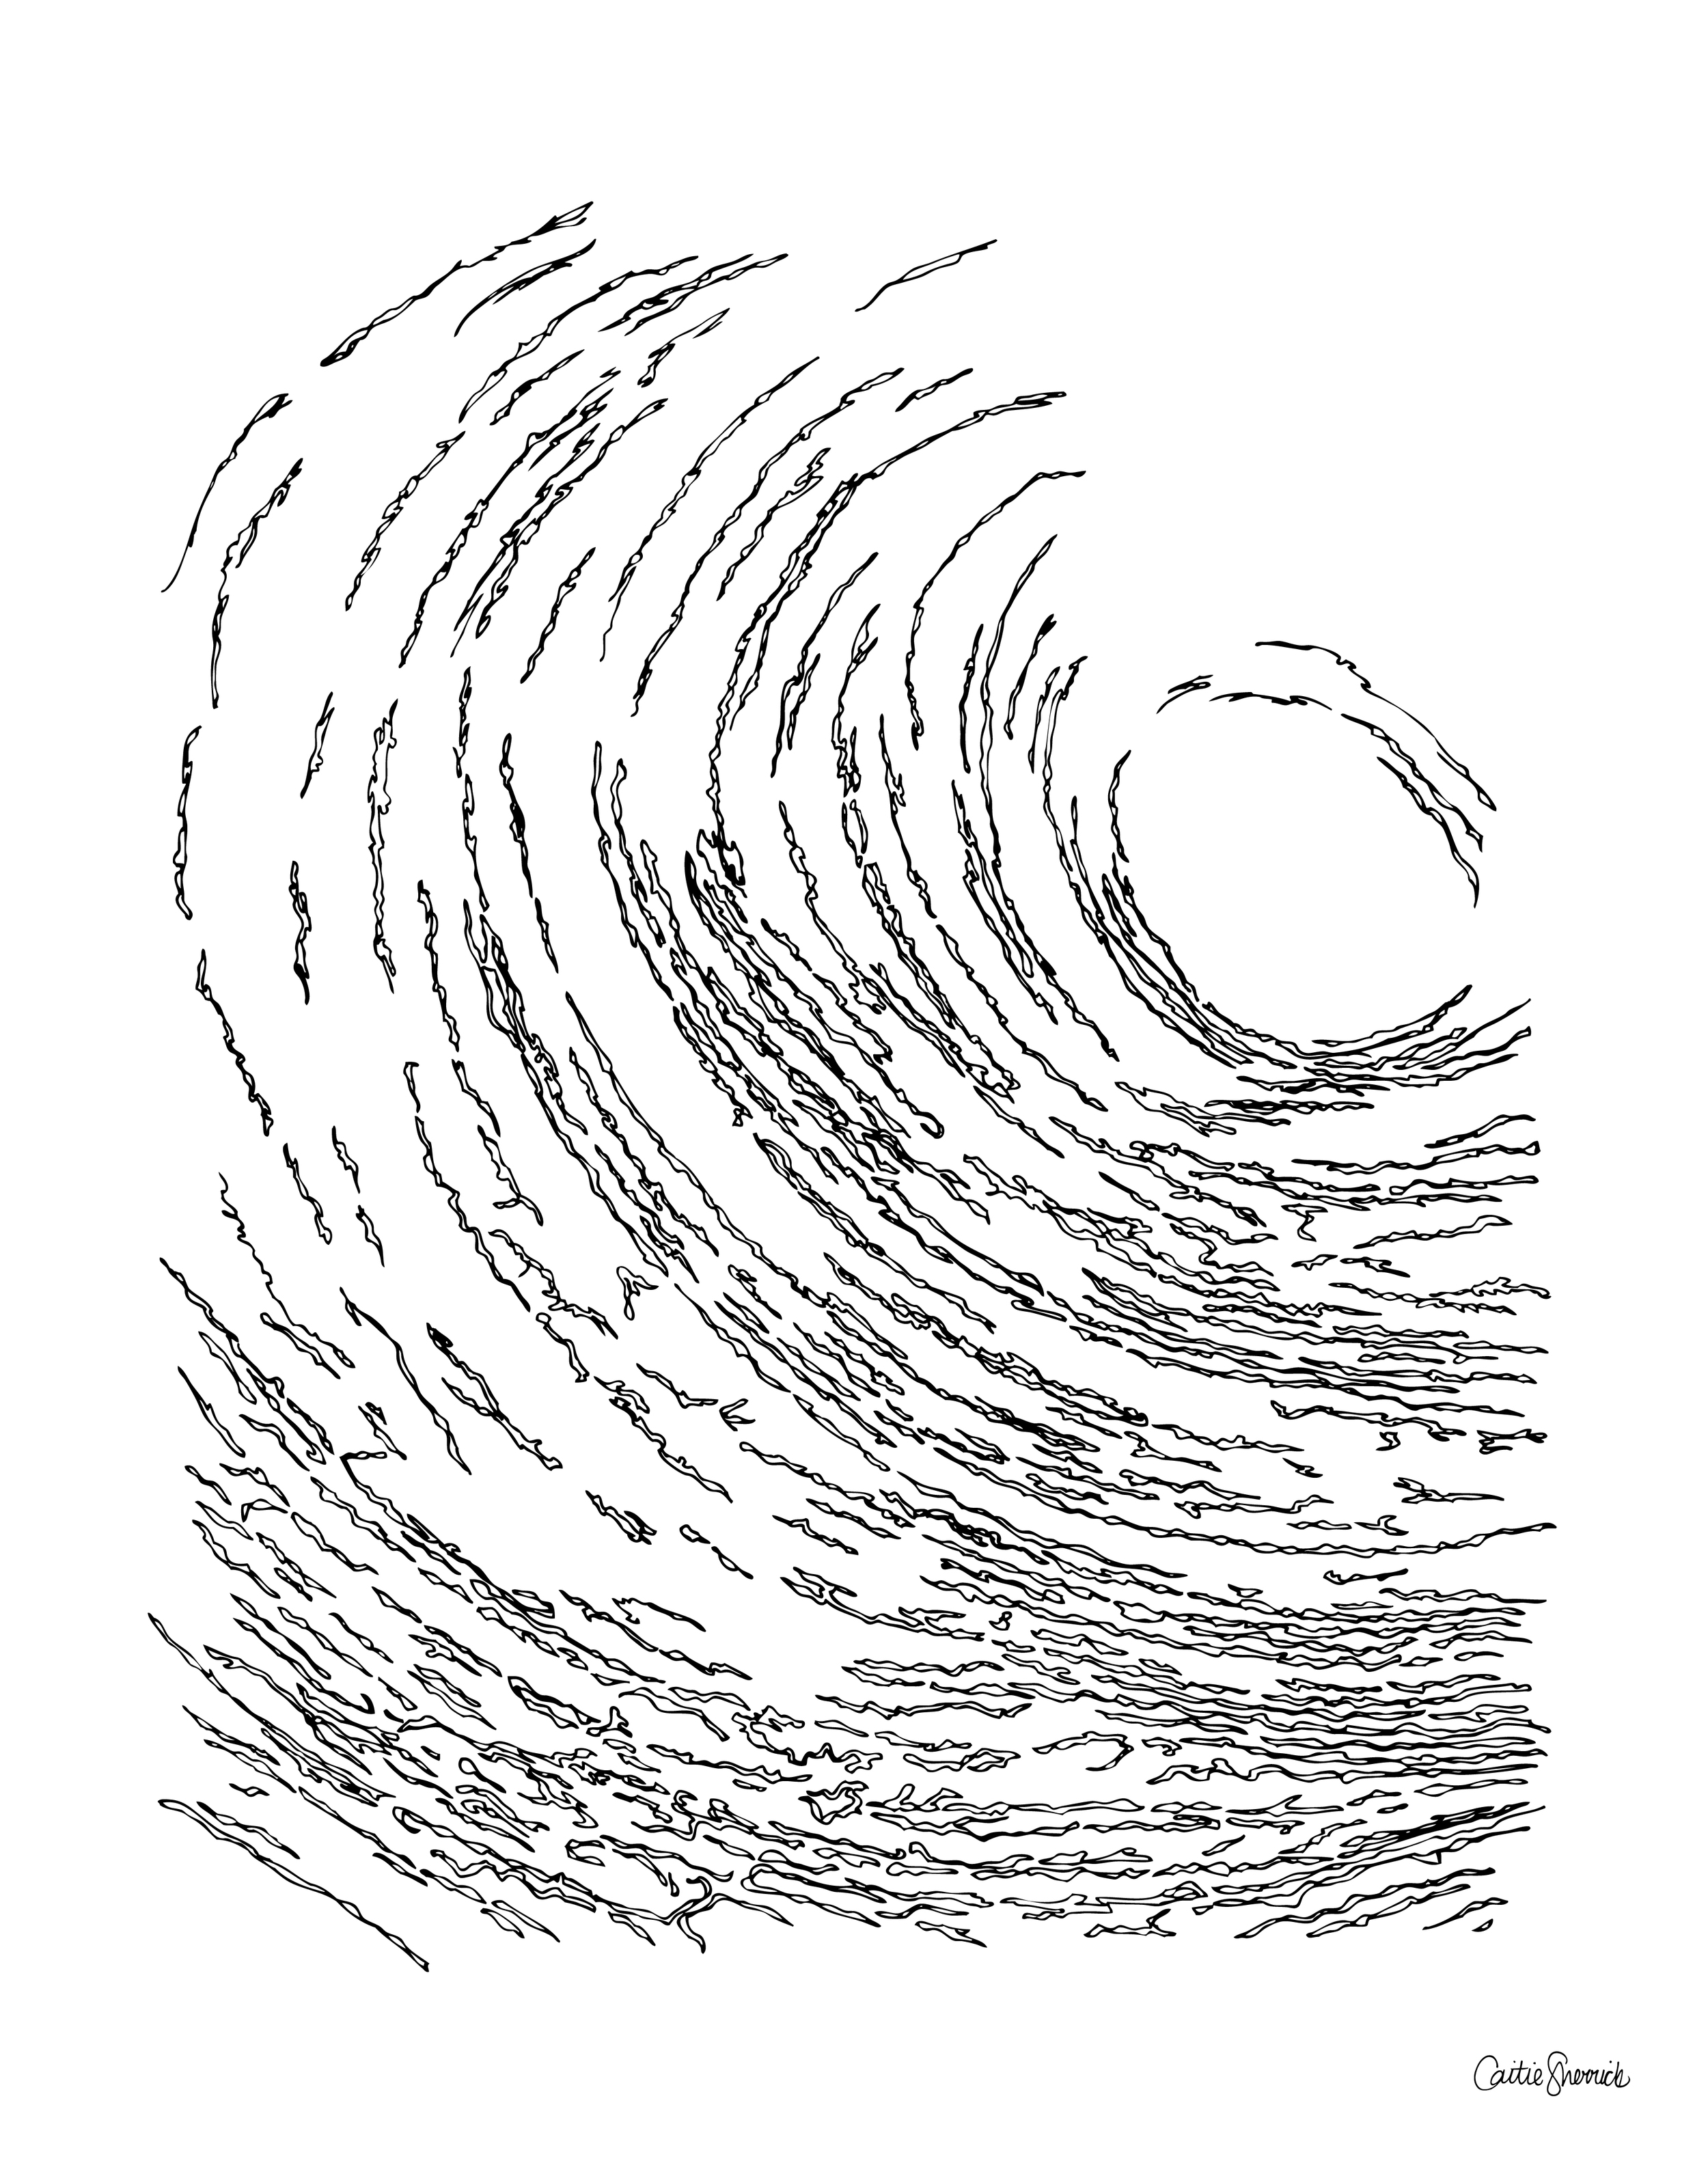 11x14_Vertical_TreeRings-Outlines.jpg